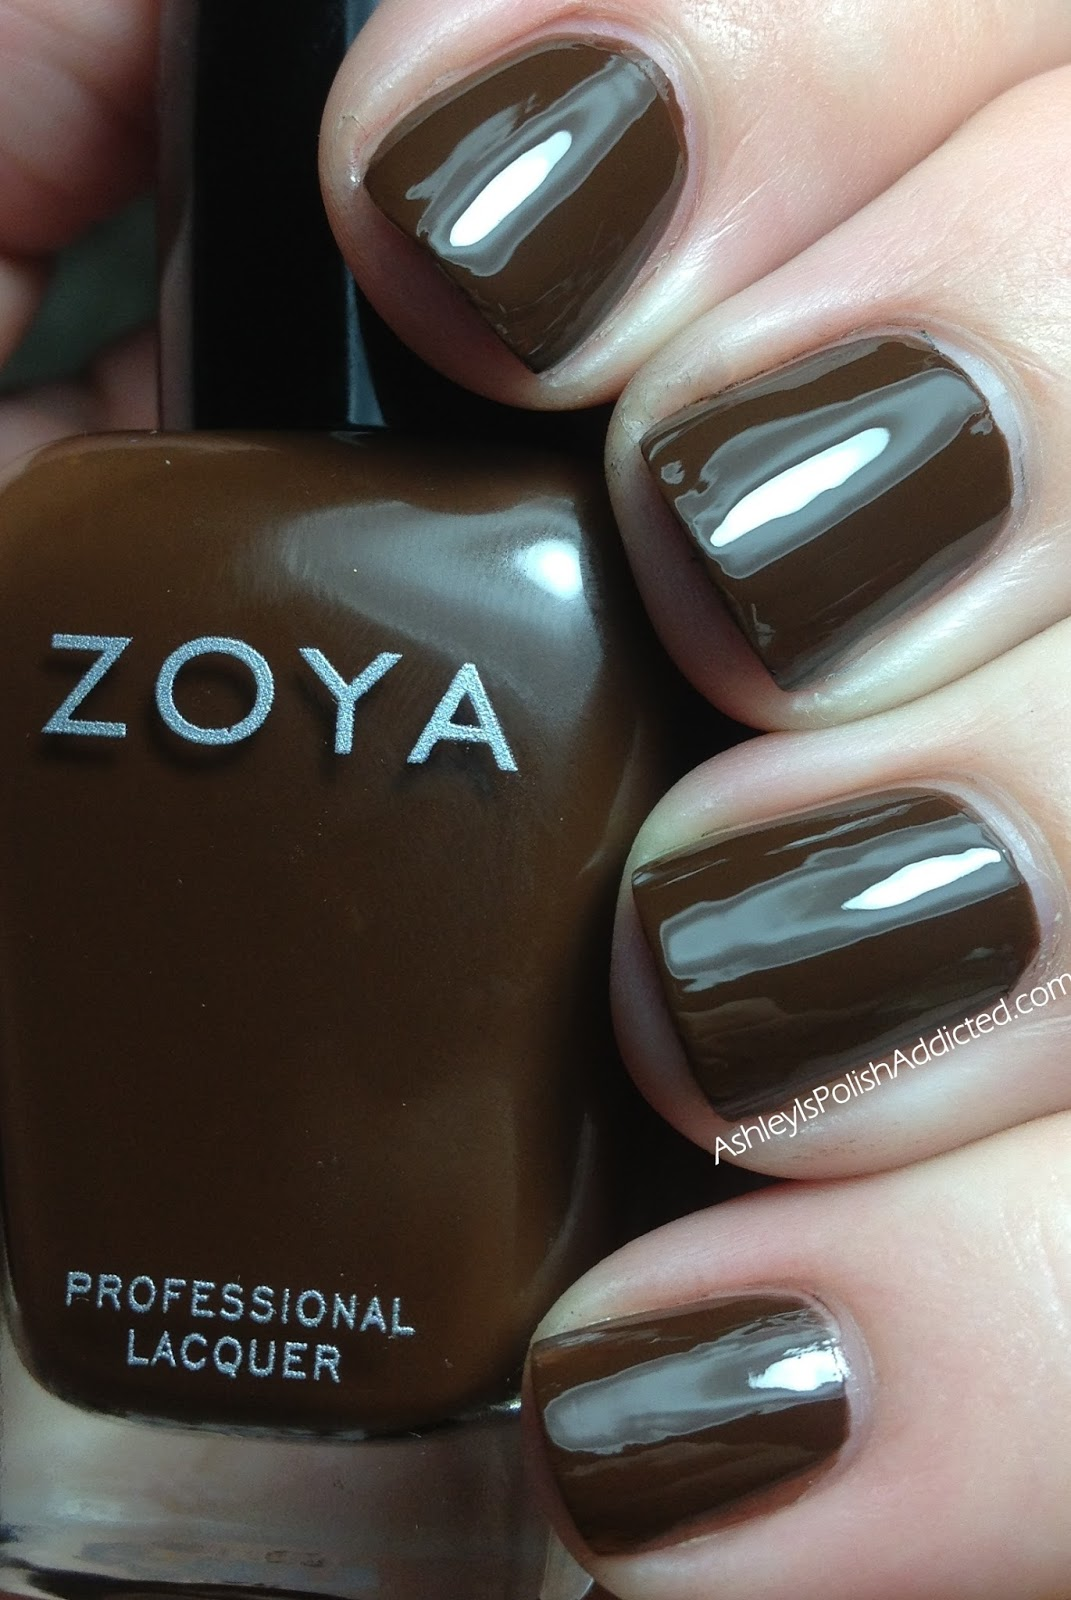 Zoya Sailor Ashley is PolishAddict...